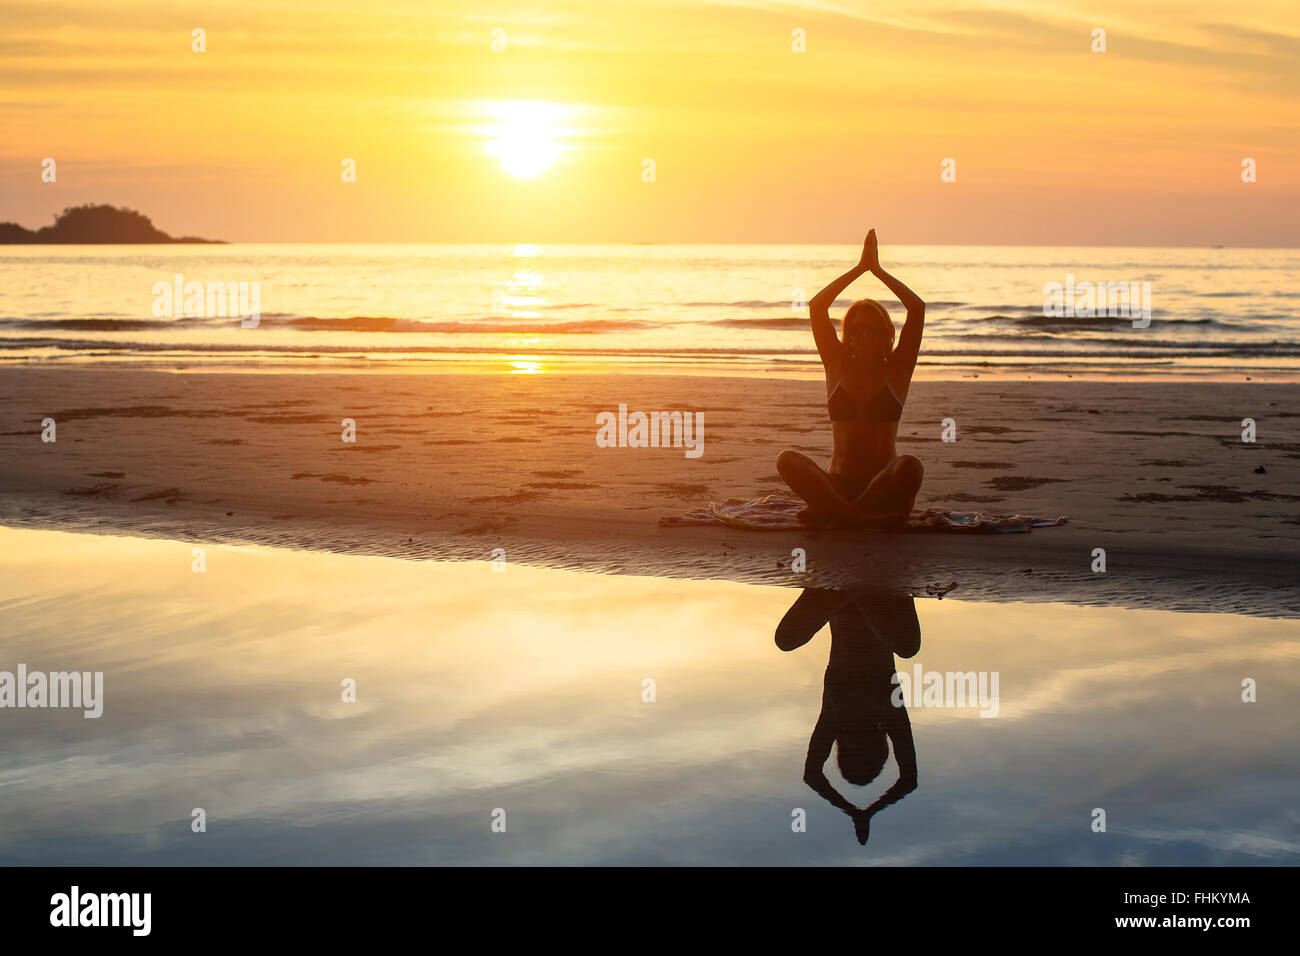 Silhouette of woman sitting on the beach during a beautiful sunset, with reflection in the water. - Stock Image